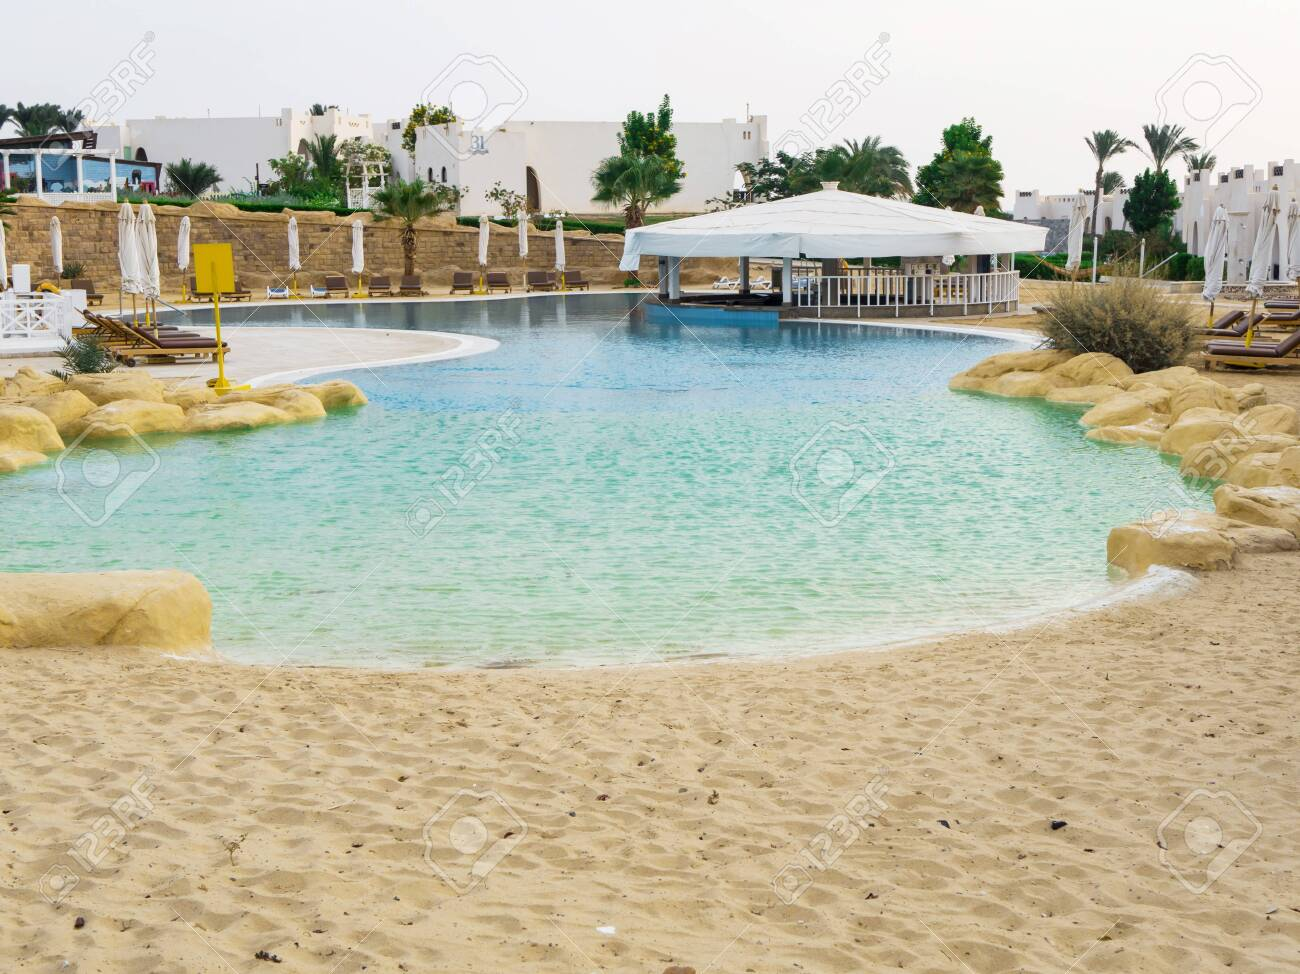 Swimming Pool With Sand Entrance In Egypt Empty Sun Loungers Stock Photo Picture And Royalty Free Image Image 118892972